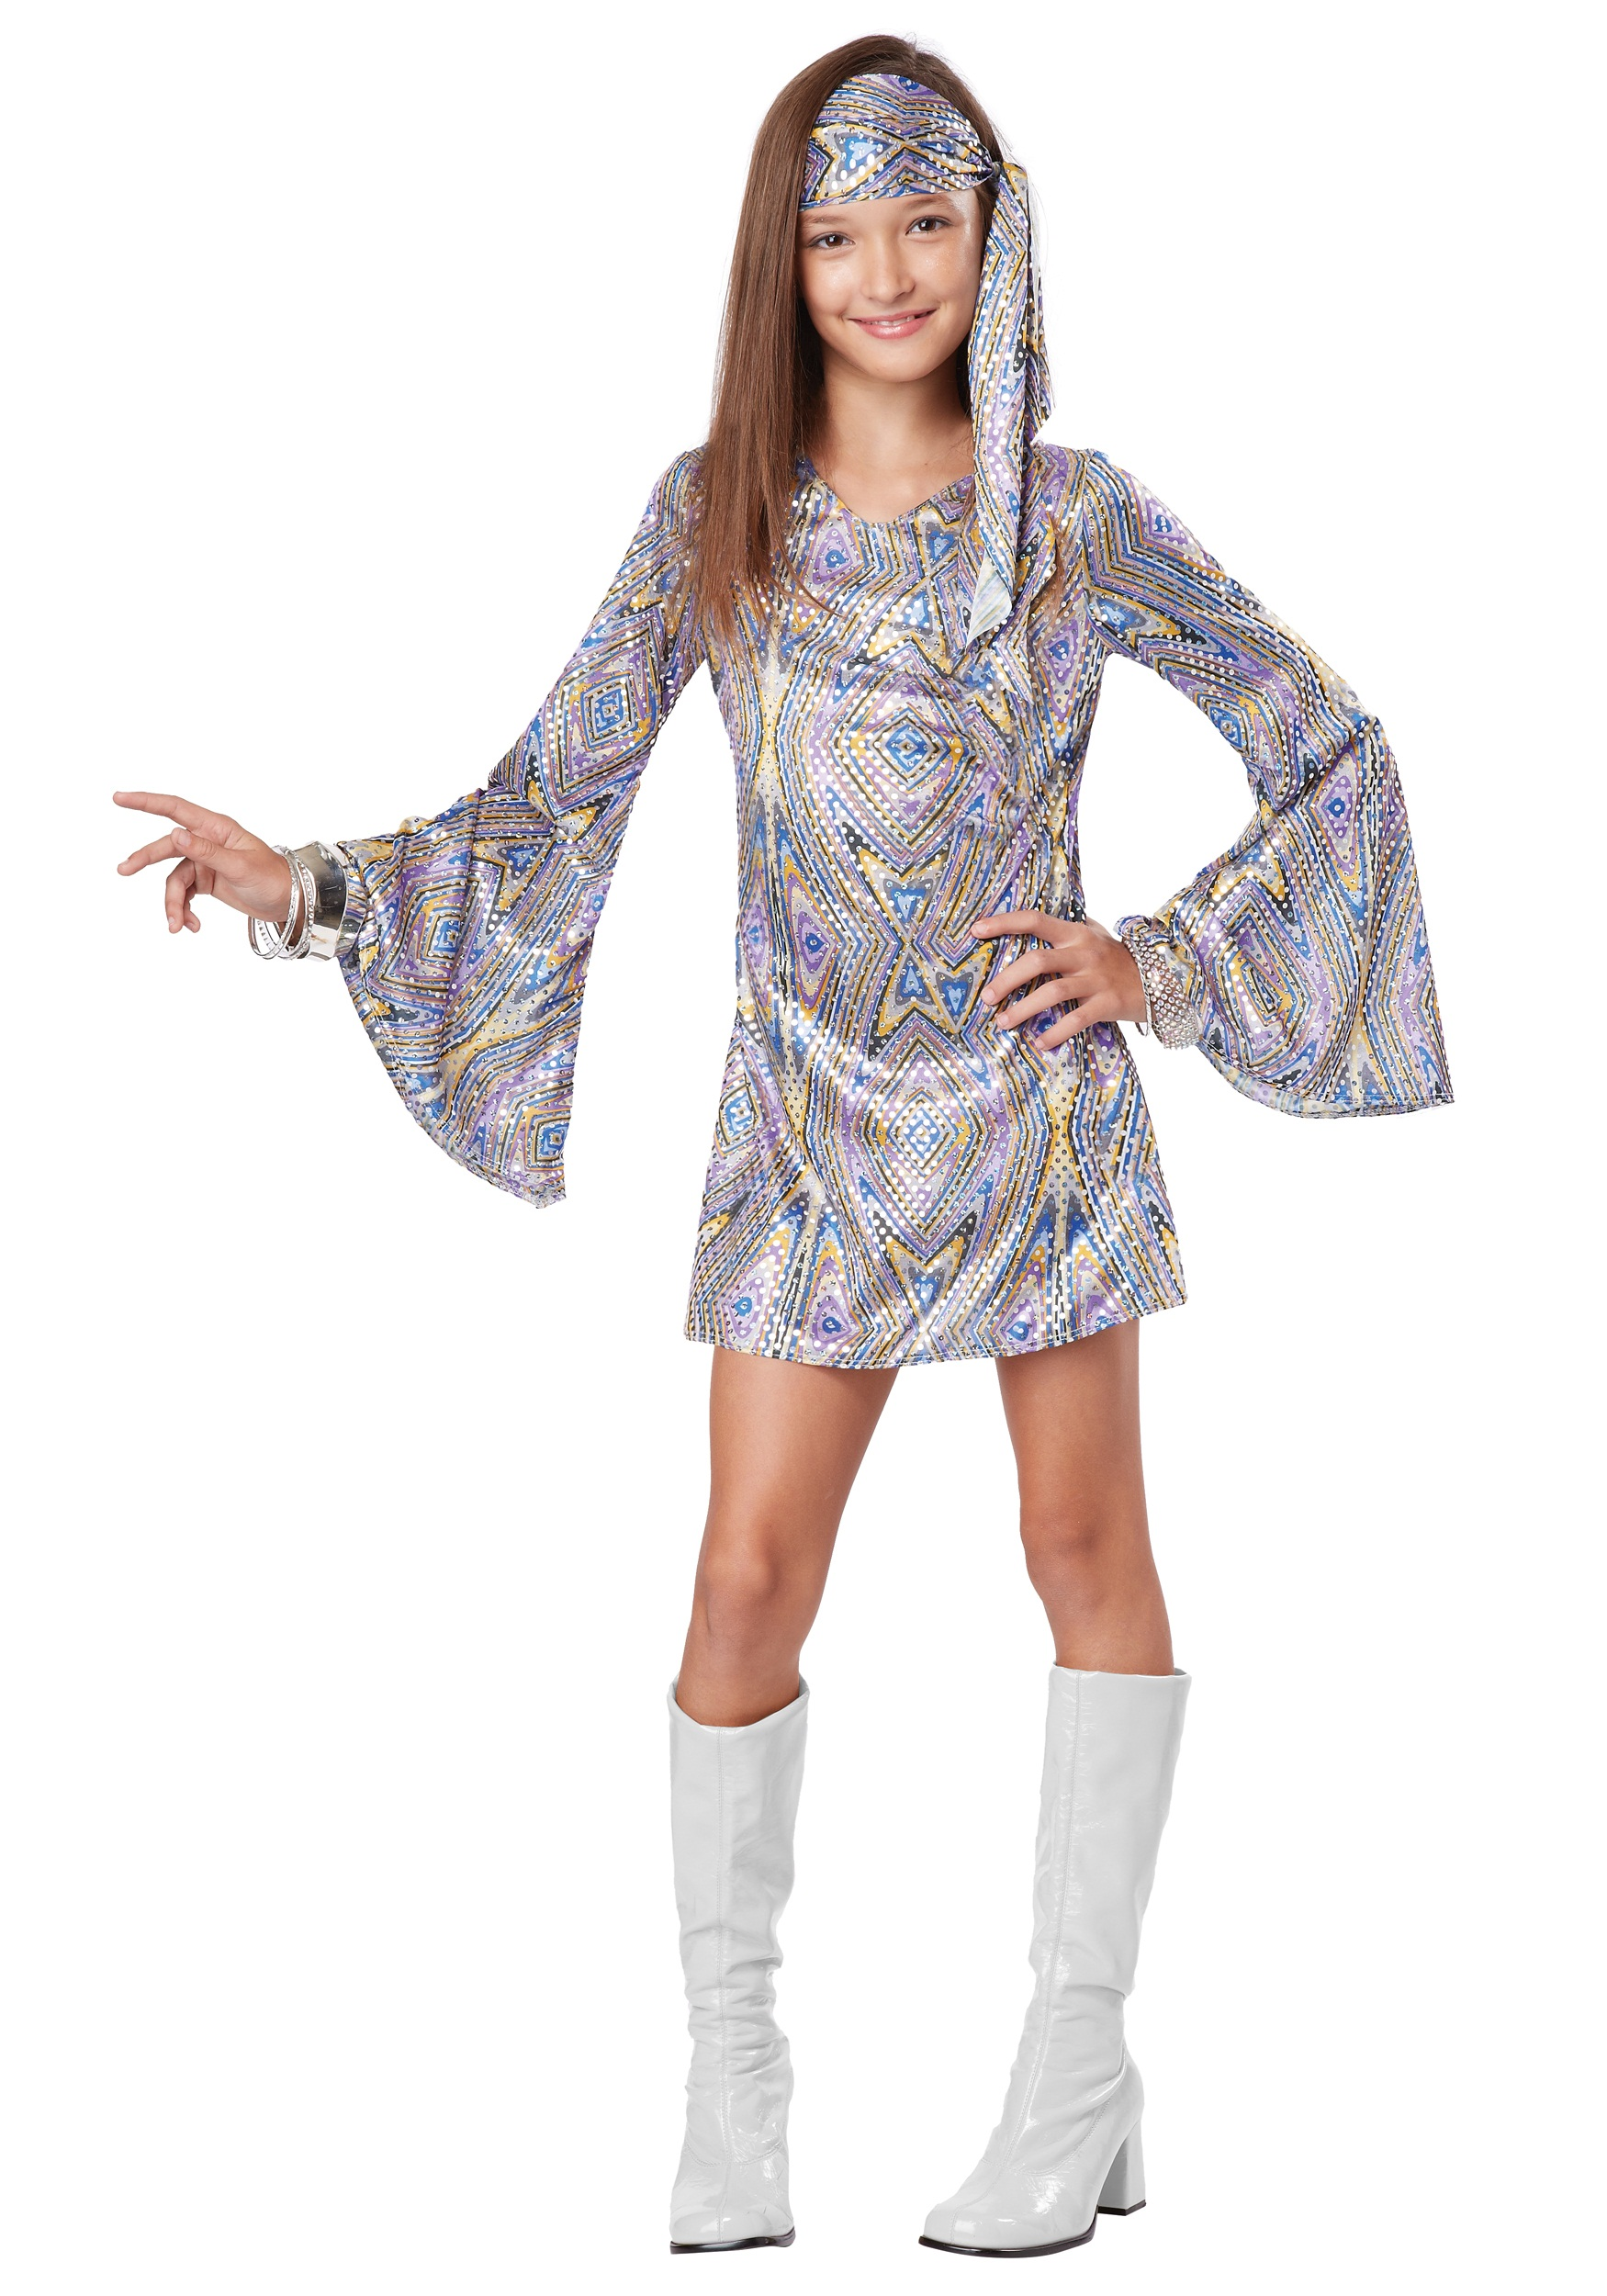 Disco Darling Costume for Girls